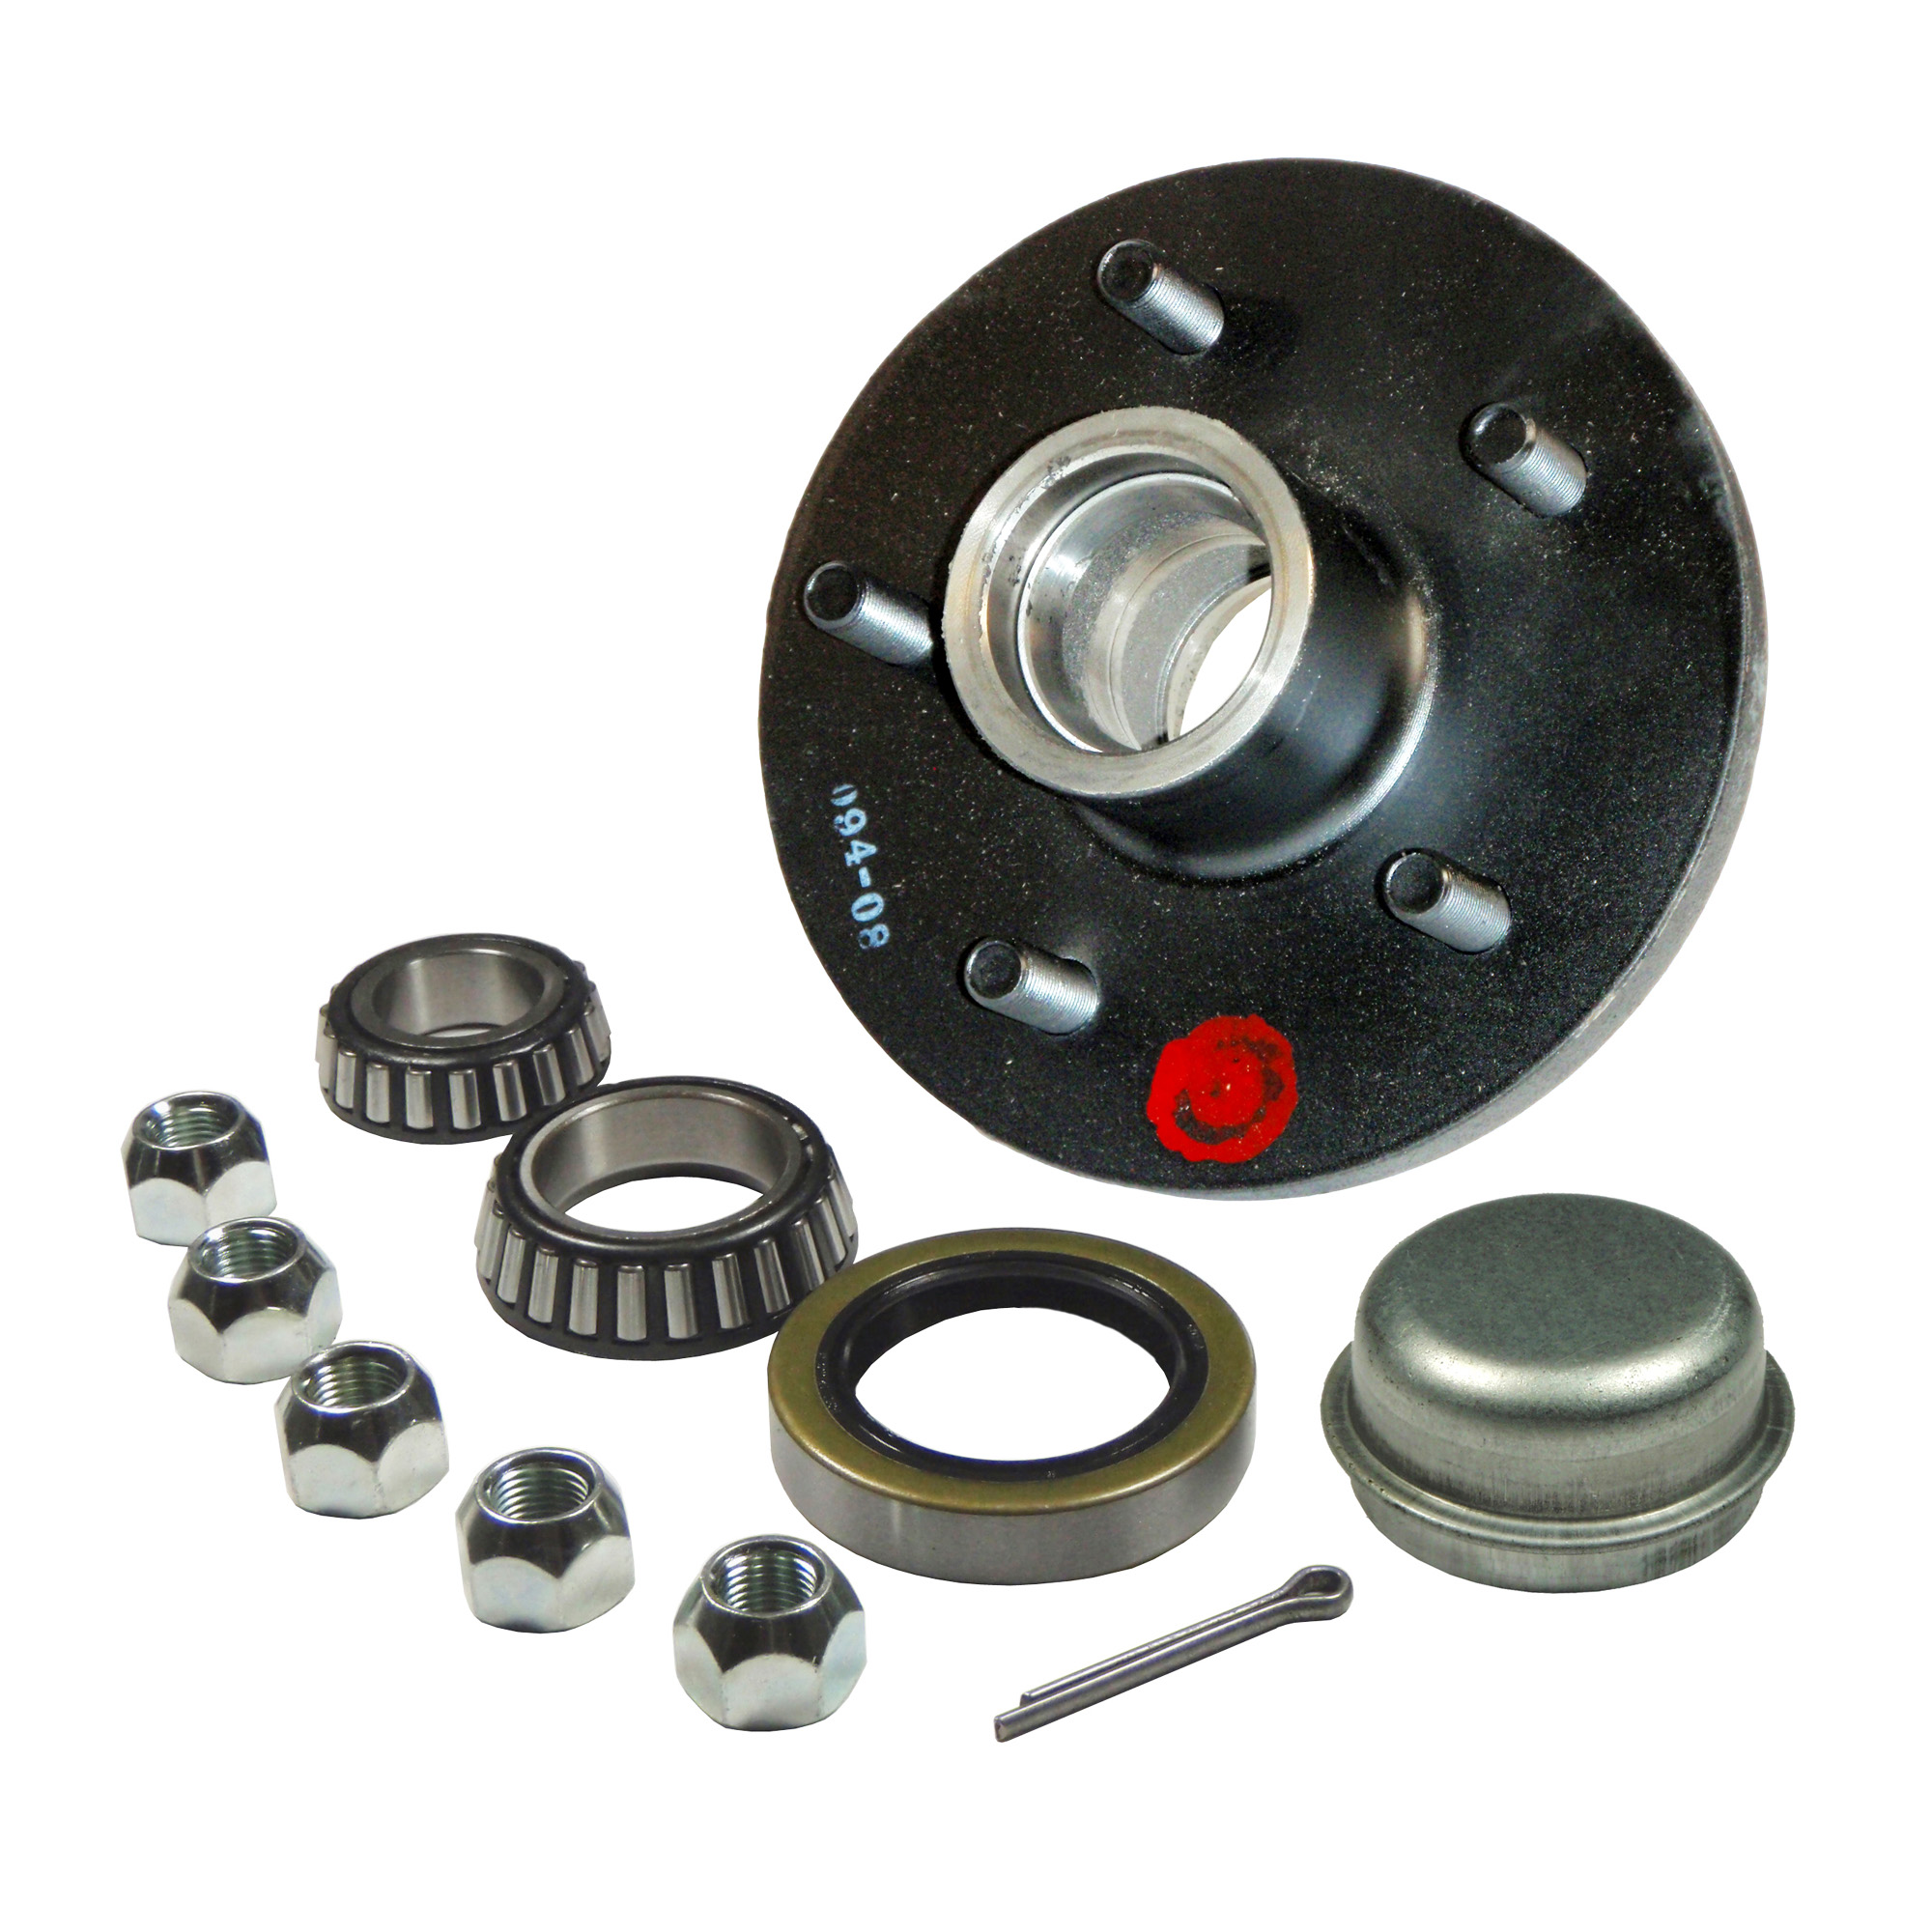 """2 Trailer Hub Kits fits 1-3//8/"""" to 1-1//16/"""" Spindle with 5 on 5 Bolt Pattern"""